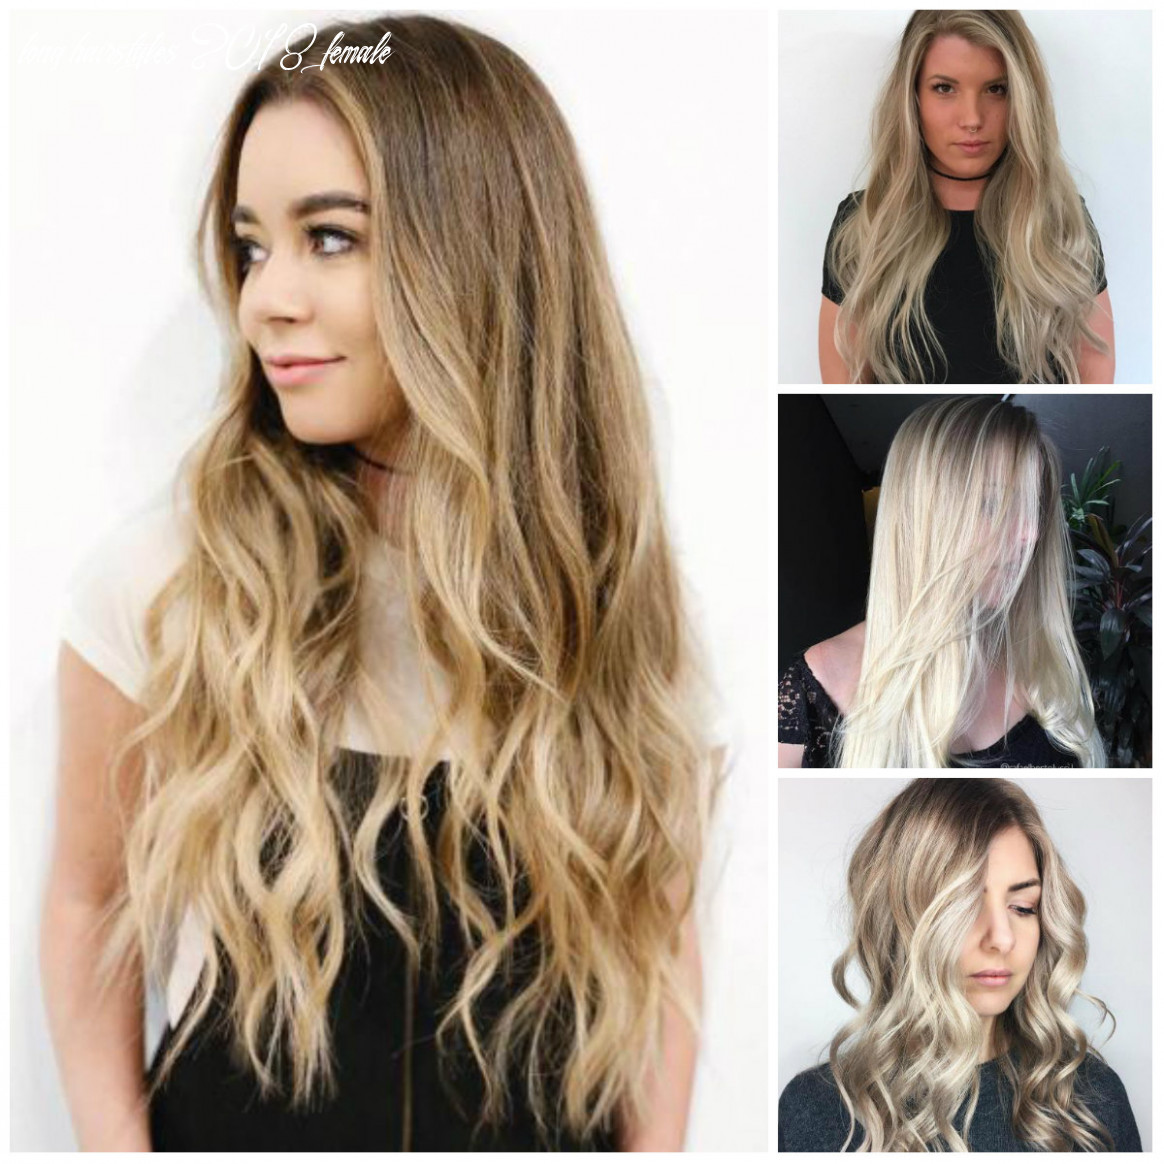 Hair color | 9 Haircuts, Hairstyles and Hair Colors